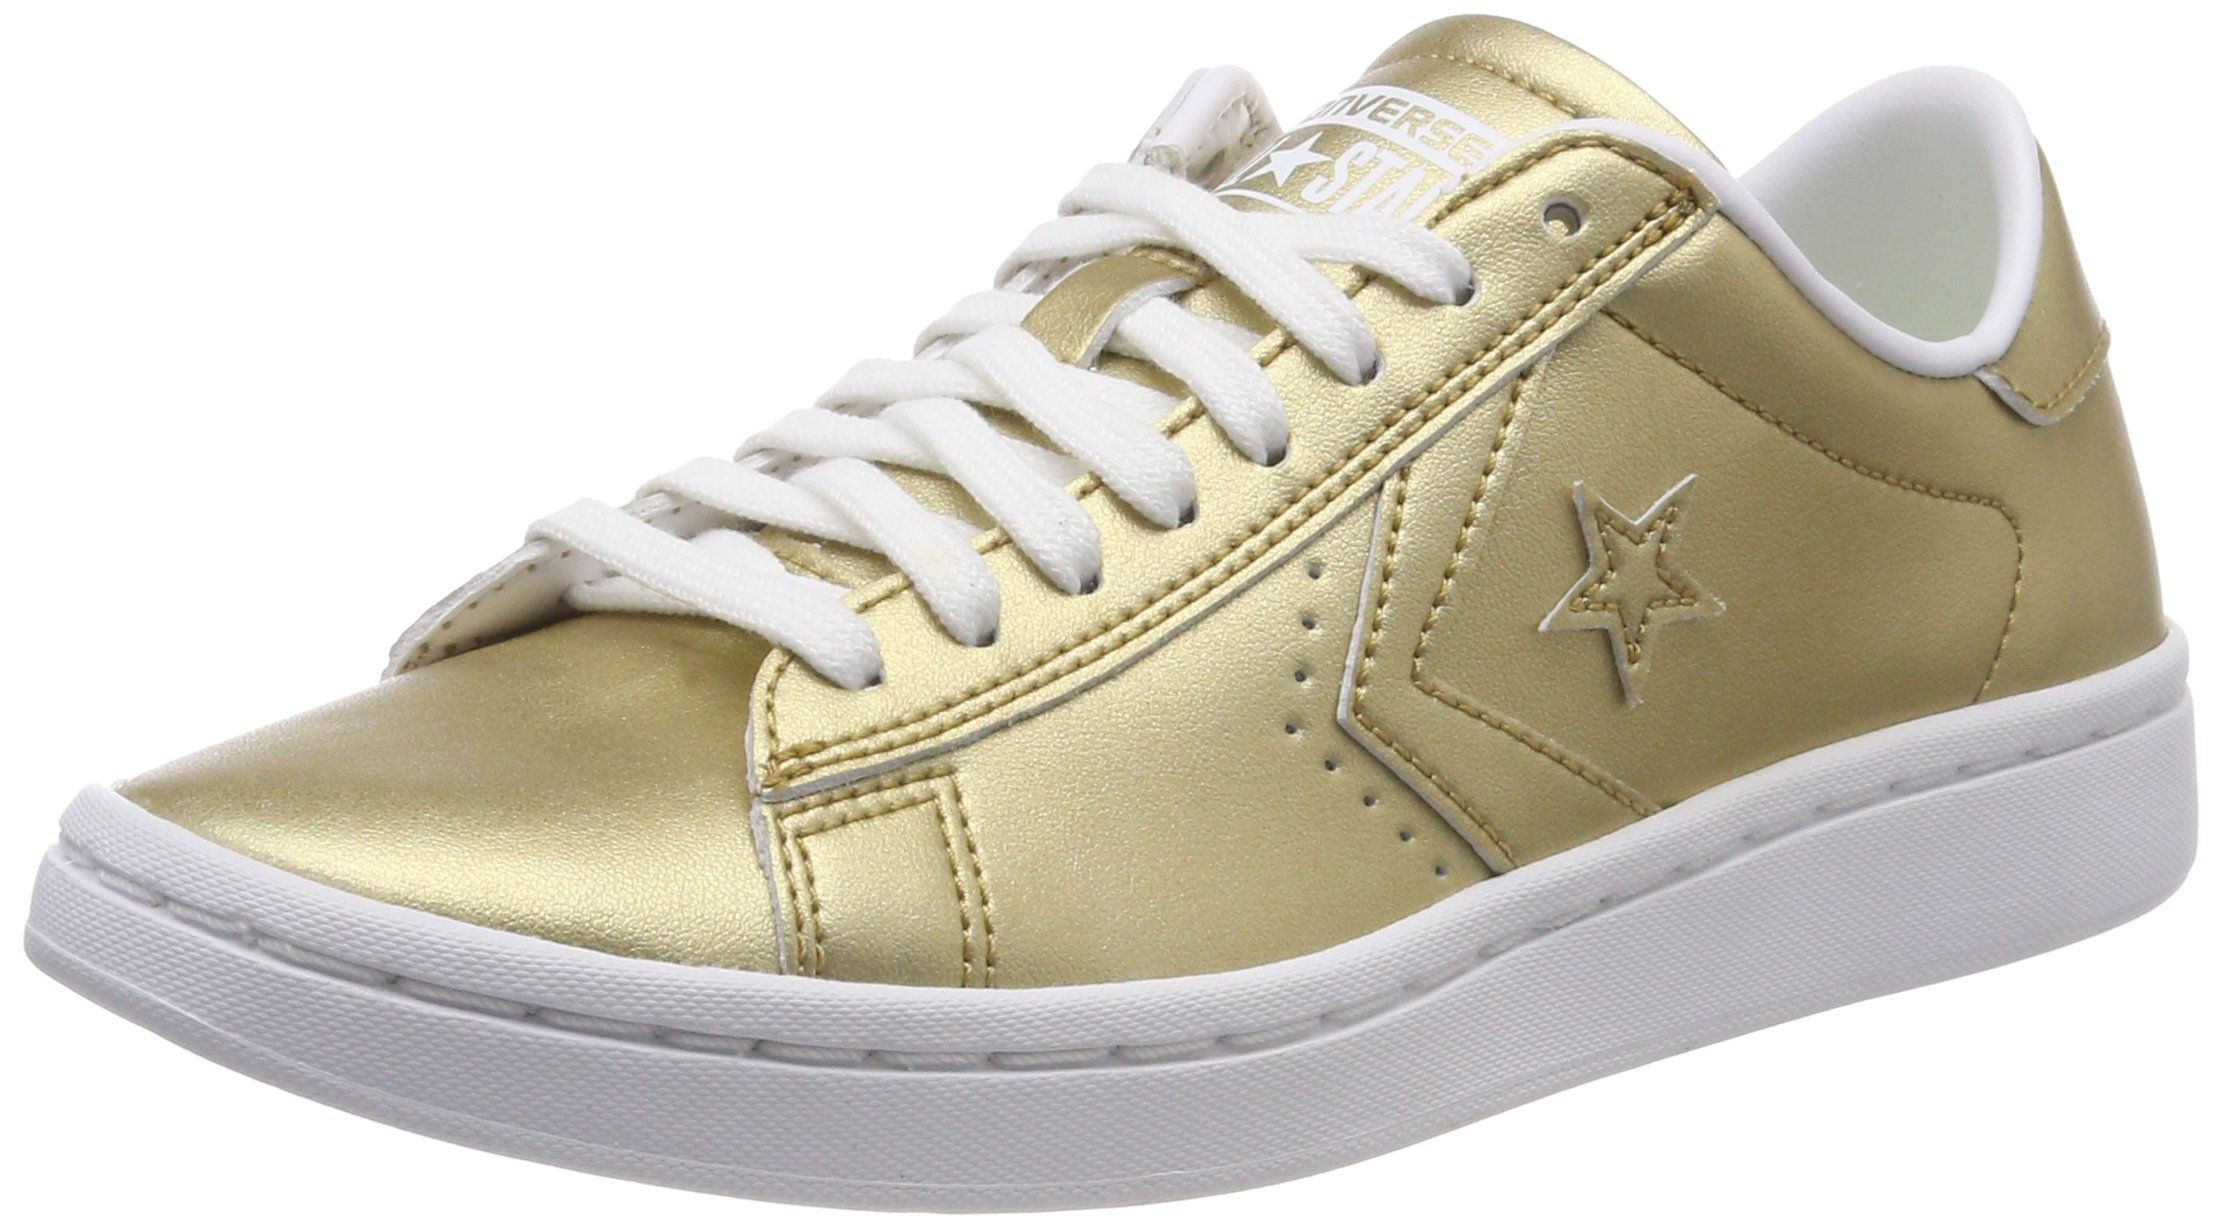 Converse PRO LEATHER LP LEATHER LOW TOP womens fashion-sneakers 555946C_7 - Light Gold/White/White